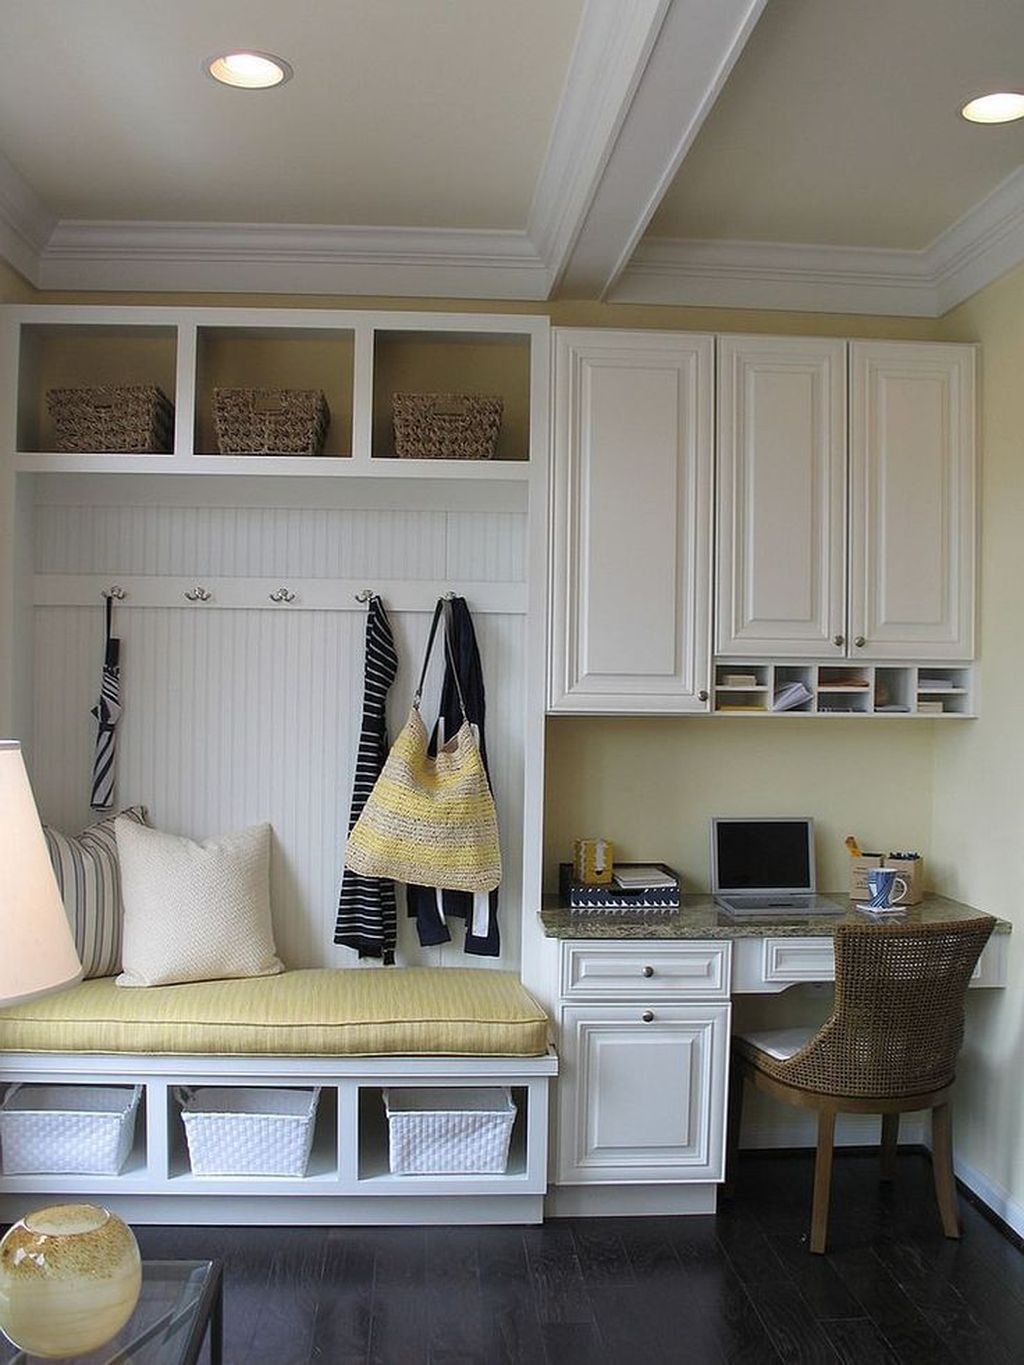 Delightful Mudroom Storage Design Ideas To Have Soon08